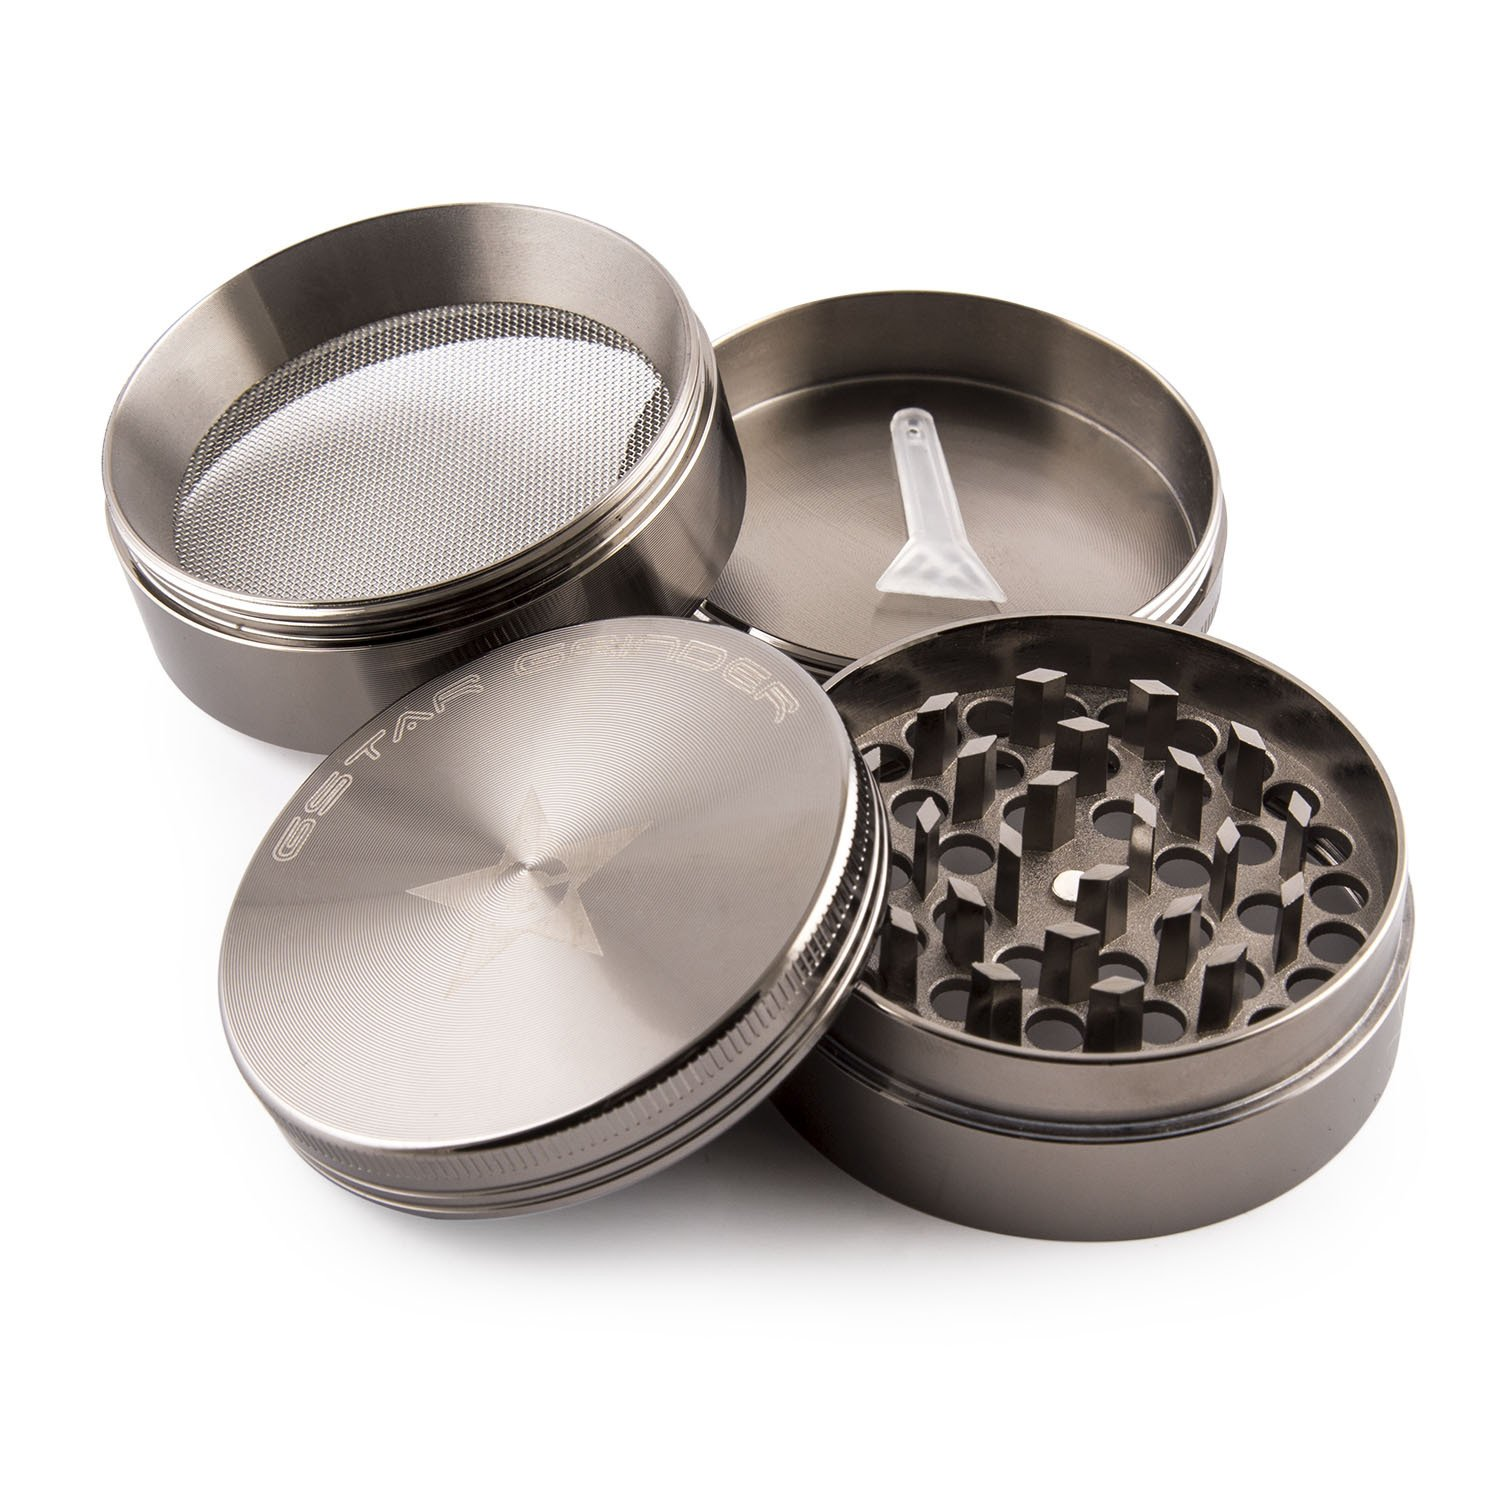 G-Star 4 stage Tobacco and Herb Grinder